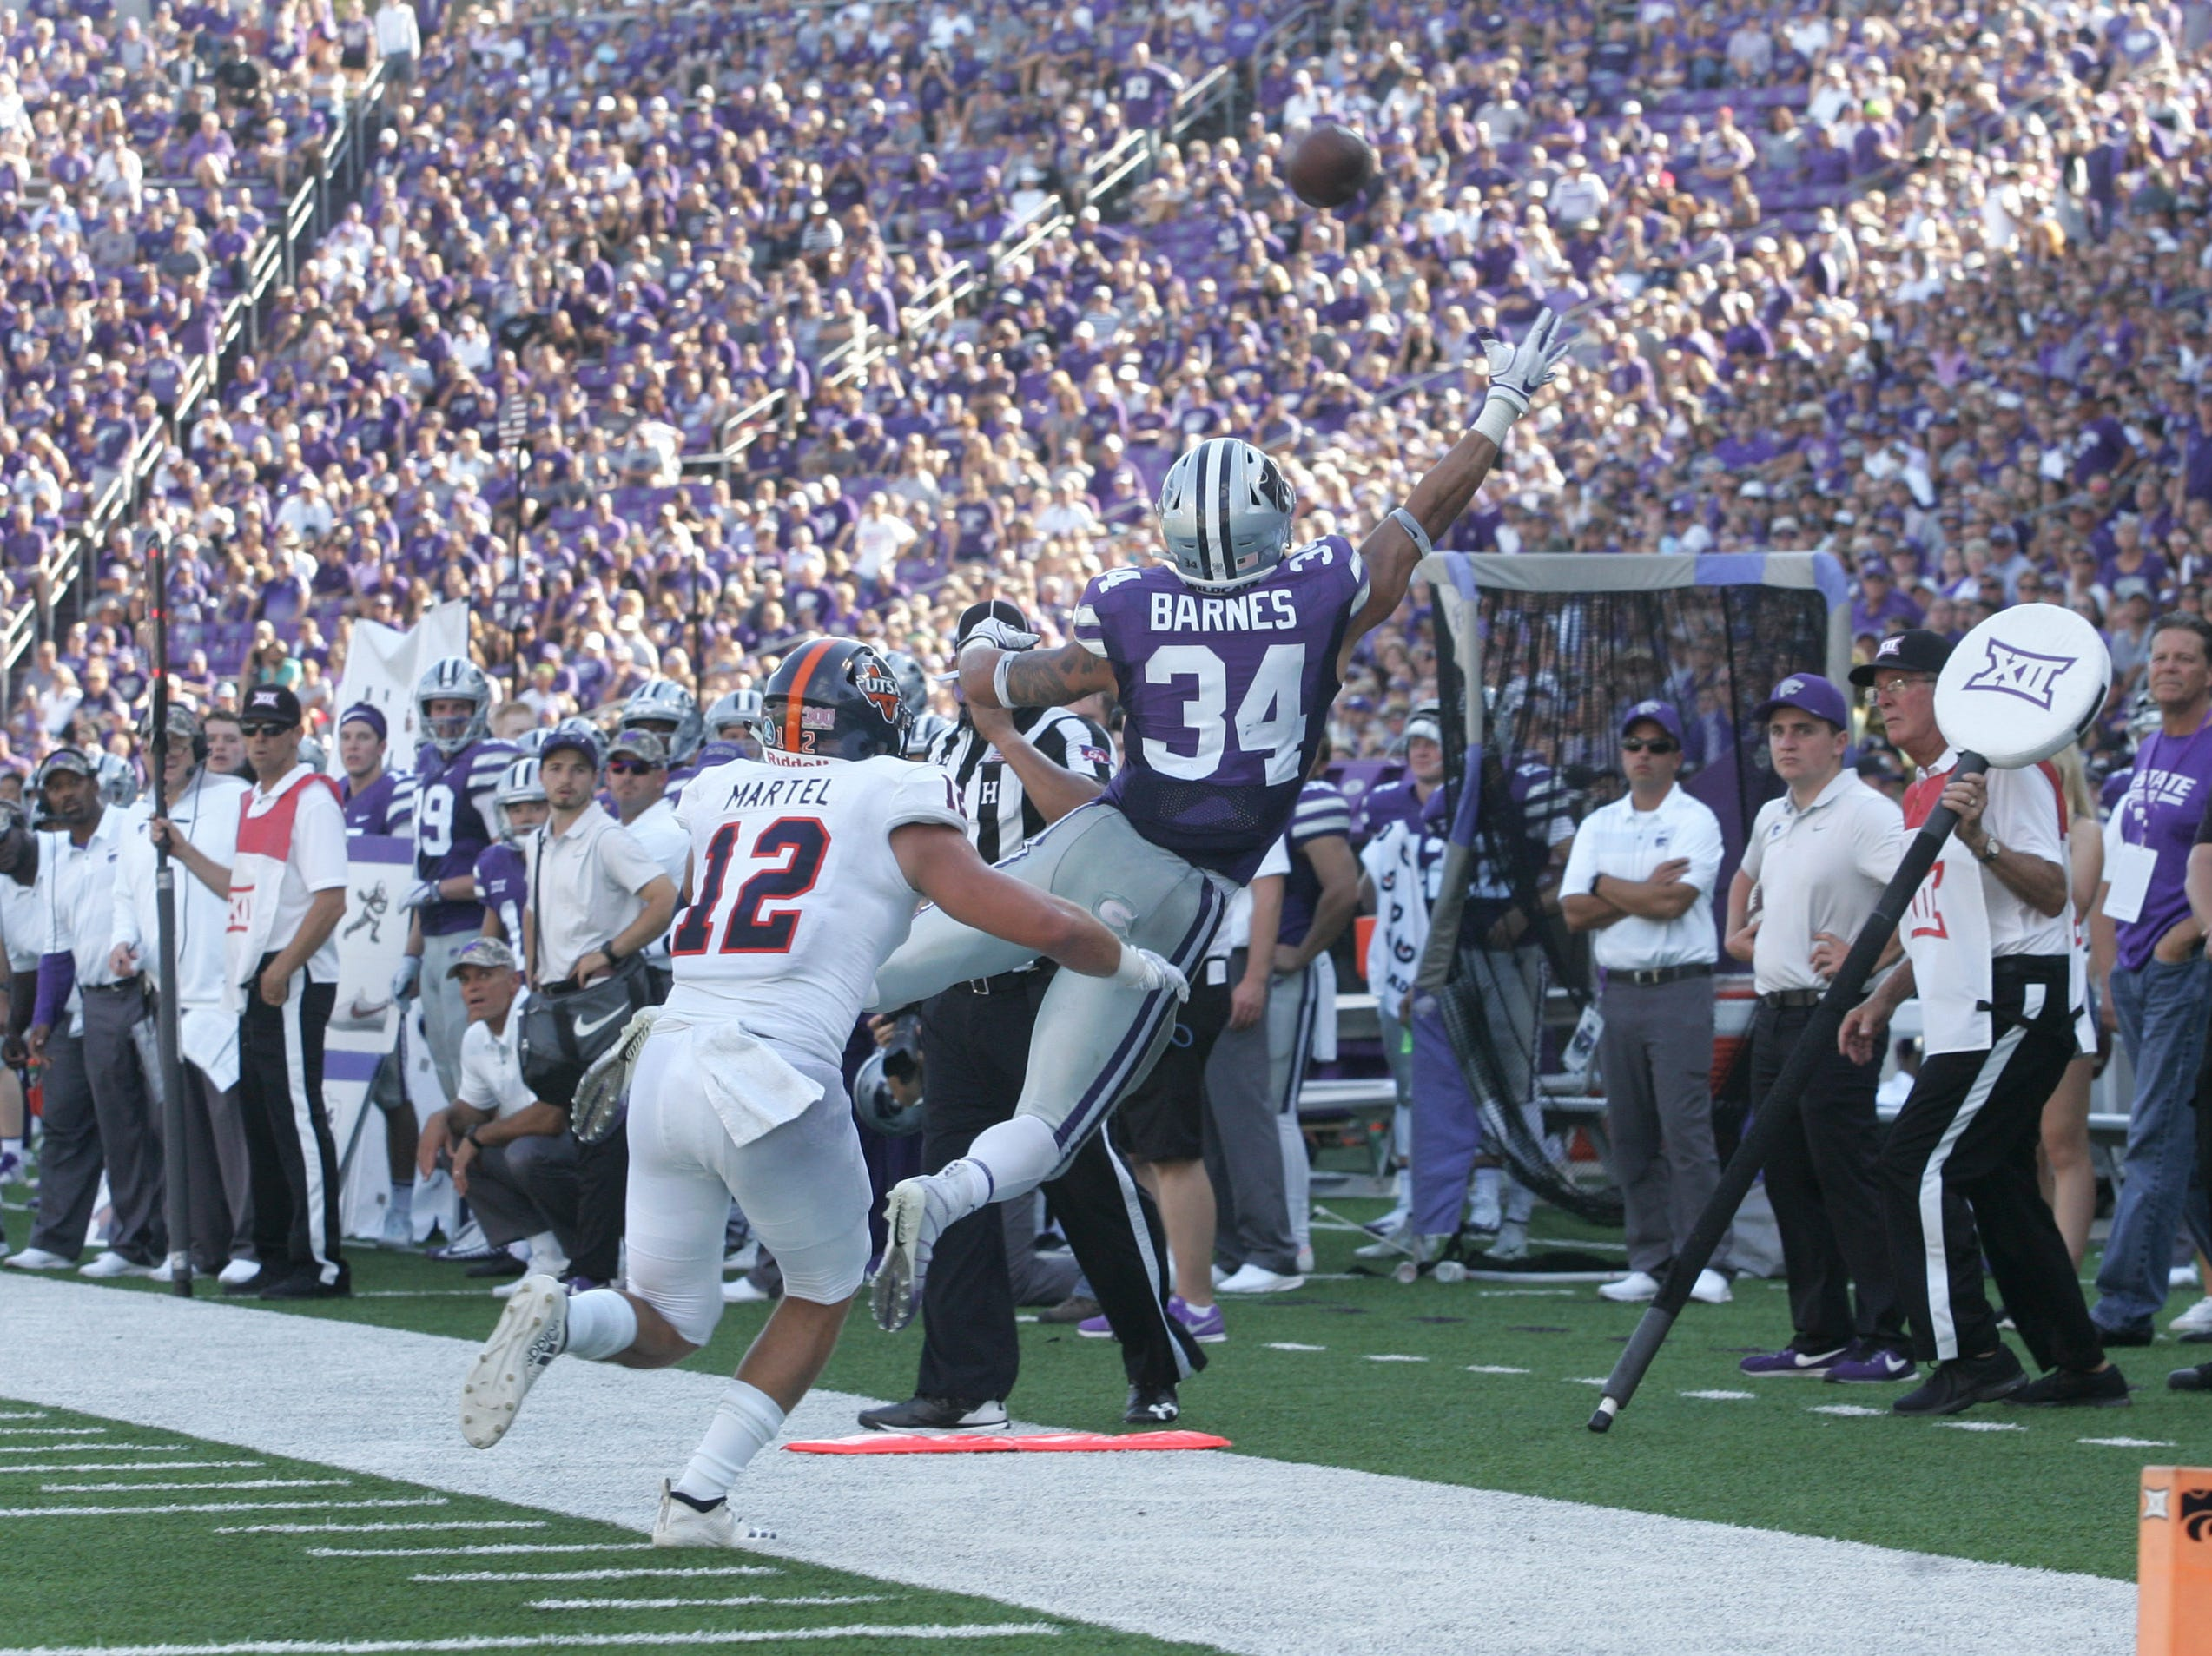 Kansas State Wildcats running back Alex Barnes (34) misses a catch against UTSA Roadrunners safety Andrew Martel (12) during the third quarter at Bill Snyder Family Stadium.